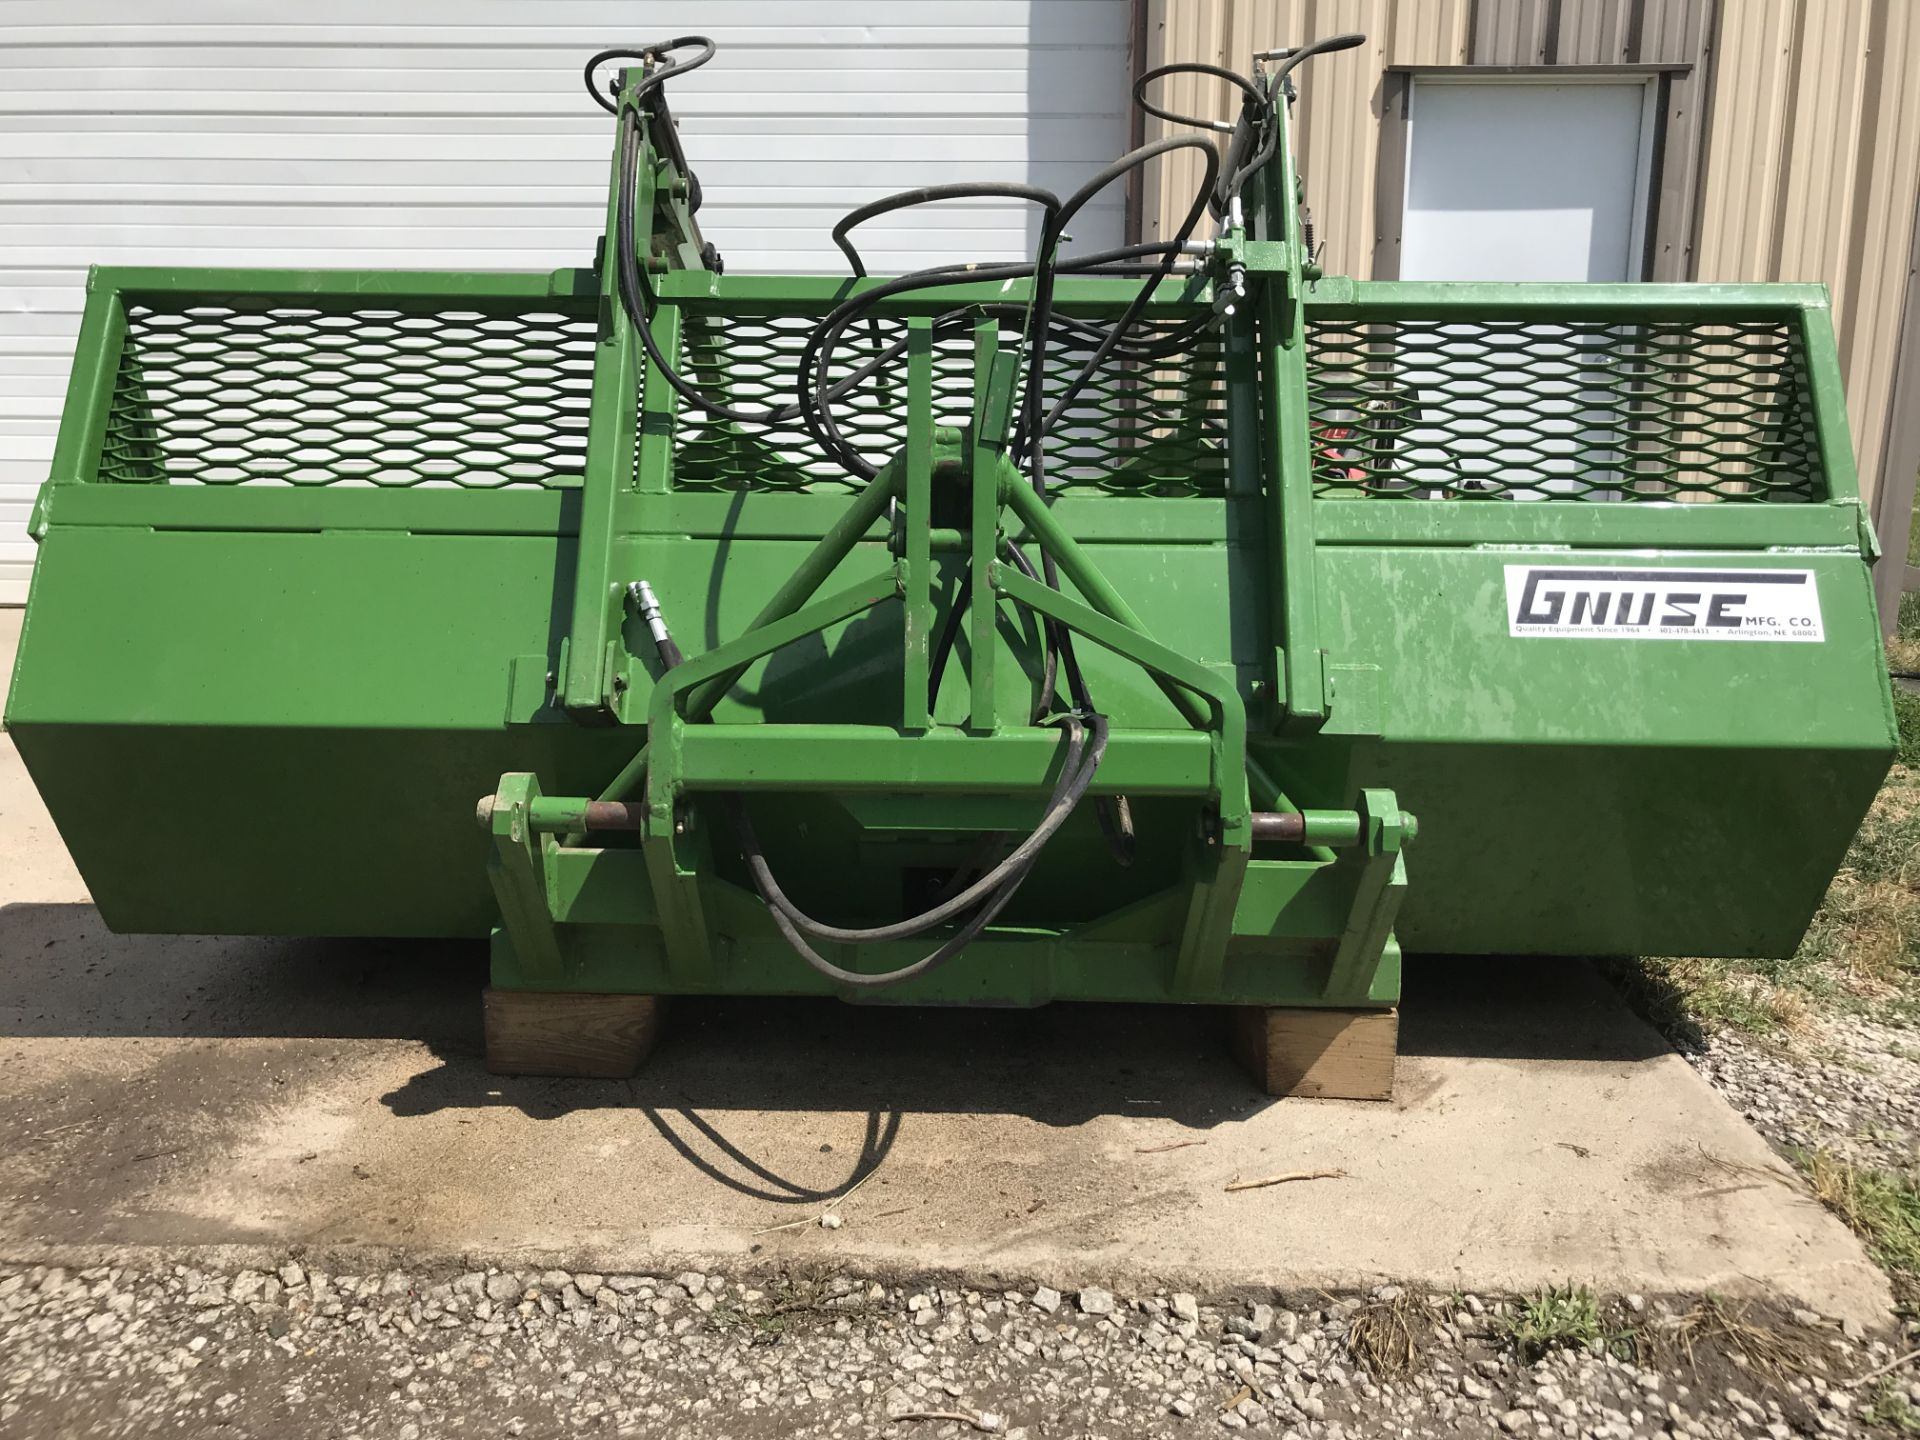 Lot 31 - 2015 Gnuse Mdl.L108 Scoop w/4 Tine Grapple (1 owner, like new)